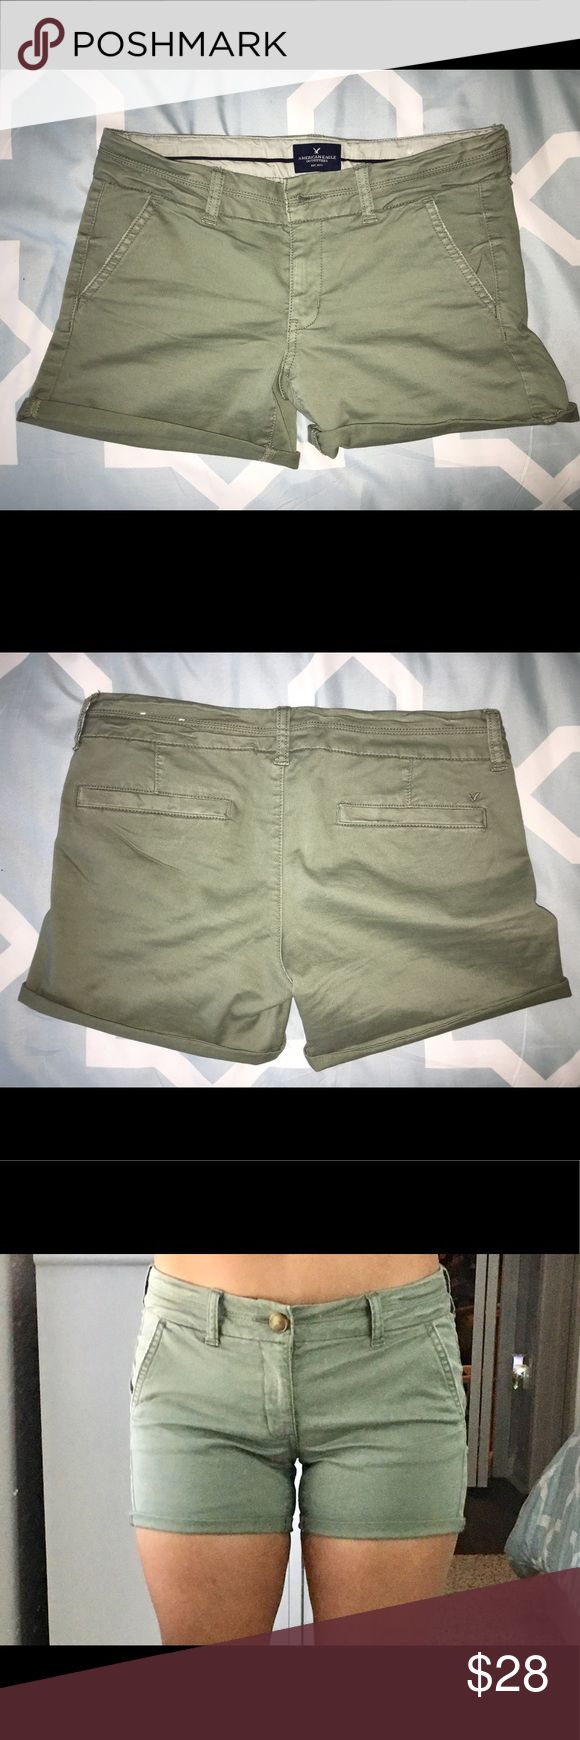 American Eagle Midi Shorts NWOT. Olive green midi shorts. You can unroll them to make them longer! They also stretch. Only worn once. American Eagle Outfitters Shorts